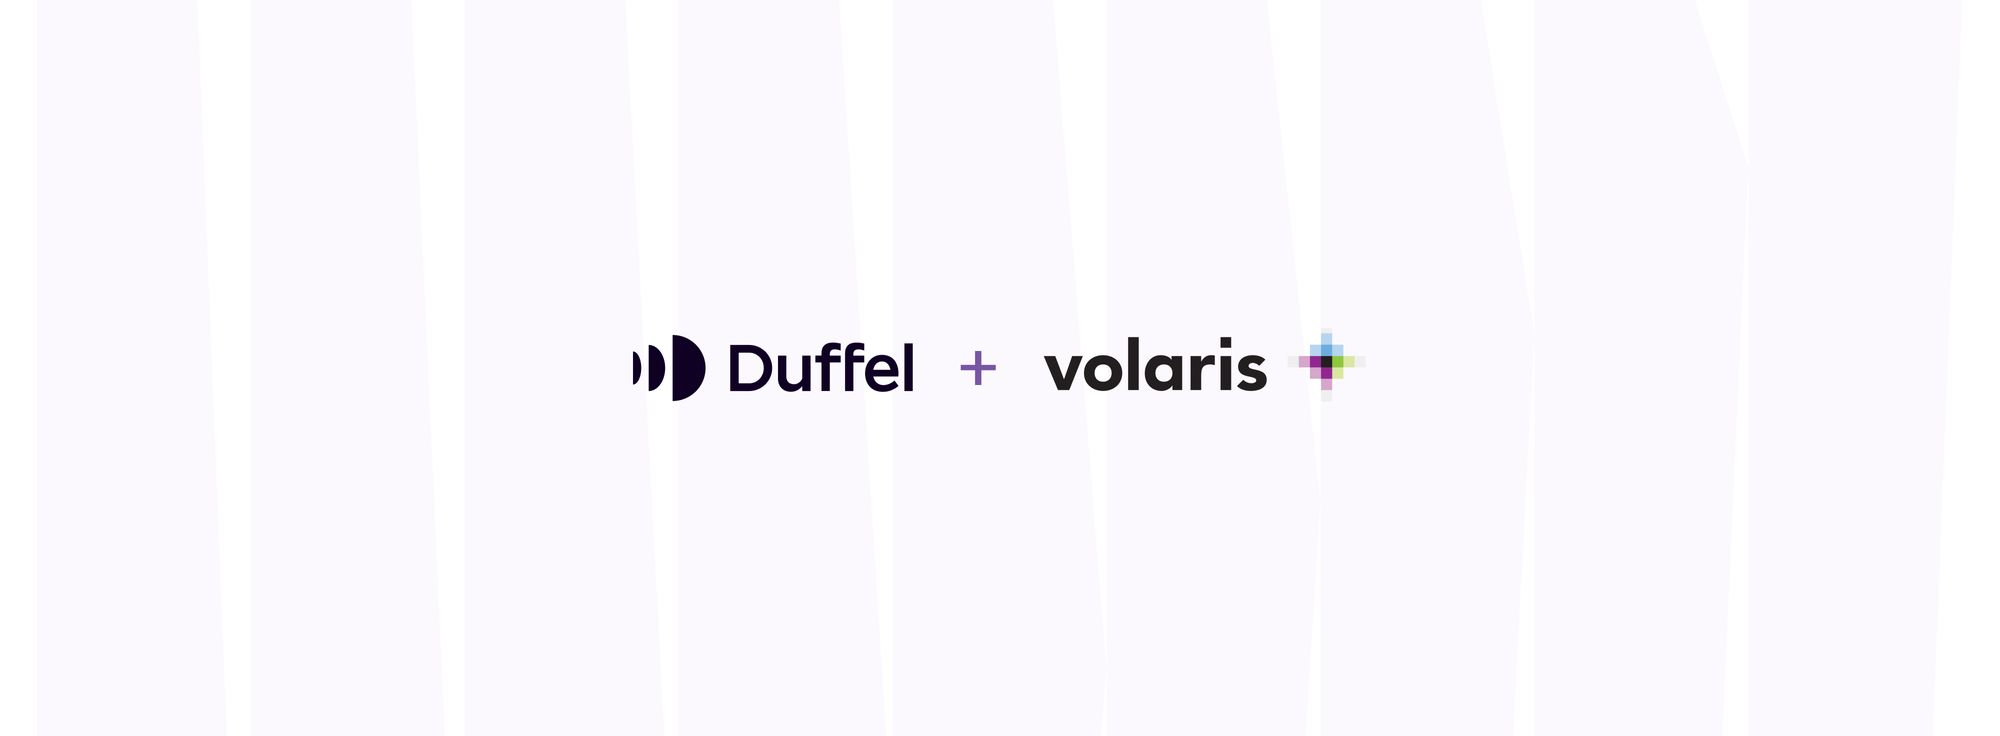 Volaris, an ultra-low-cost carrier in Mexico, is now available on Duffel!